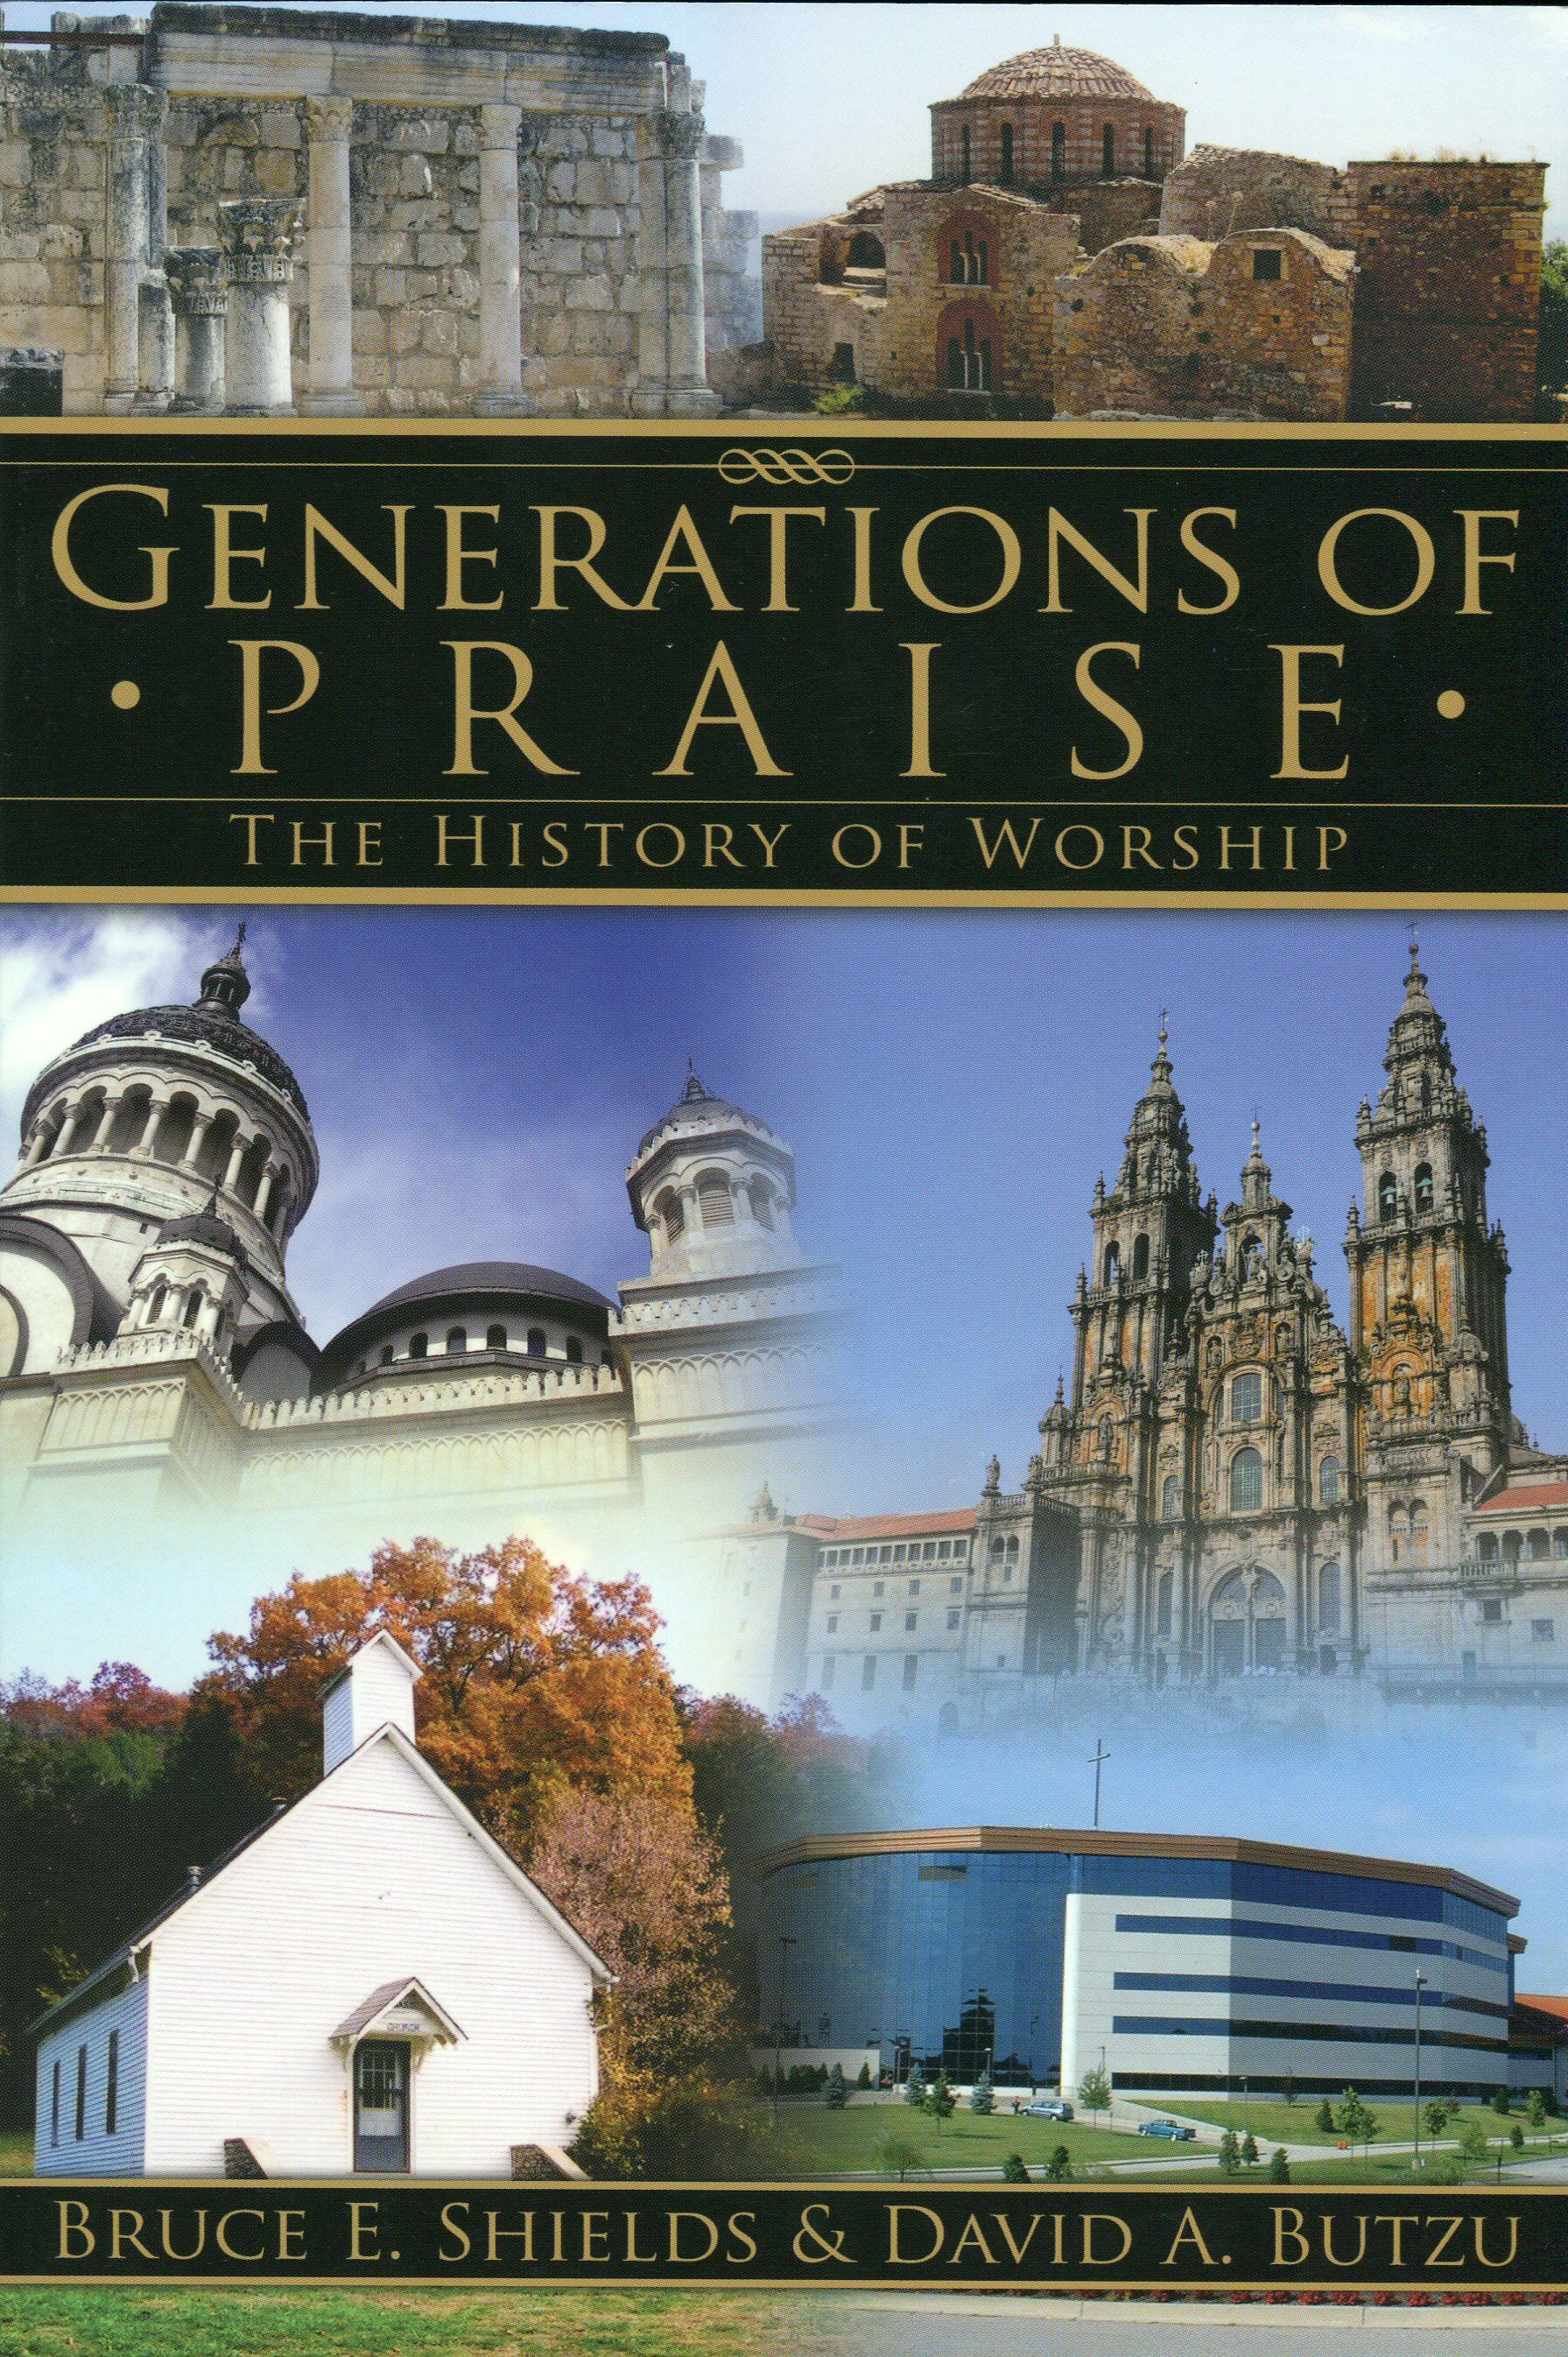 Generations of Praise: The History of Worship